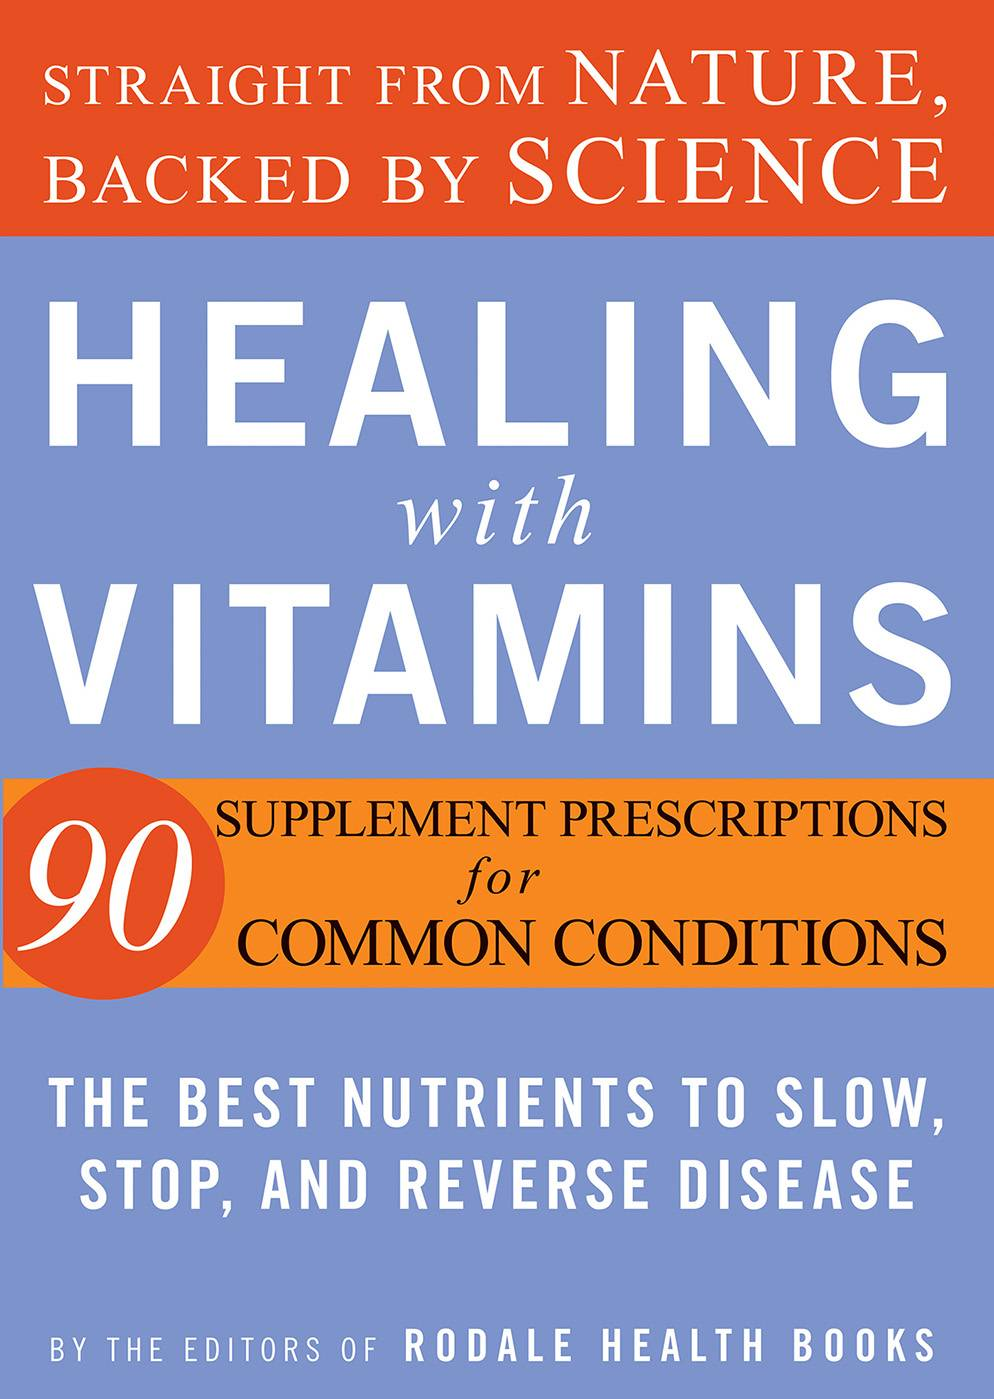 Healing with Vitamins: Straight from Nature, Backed by Science-The Best Nutrients to Slow, Stop, and R everse Disease